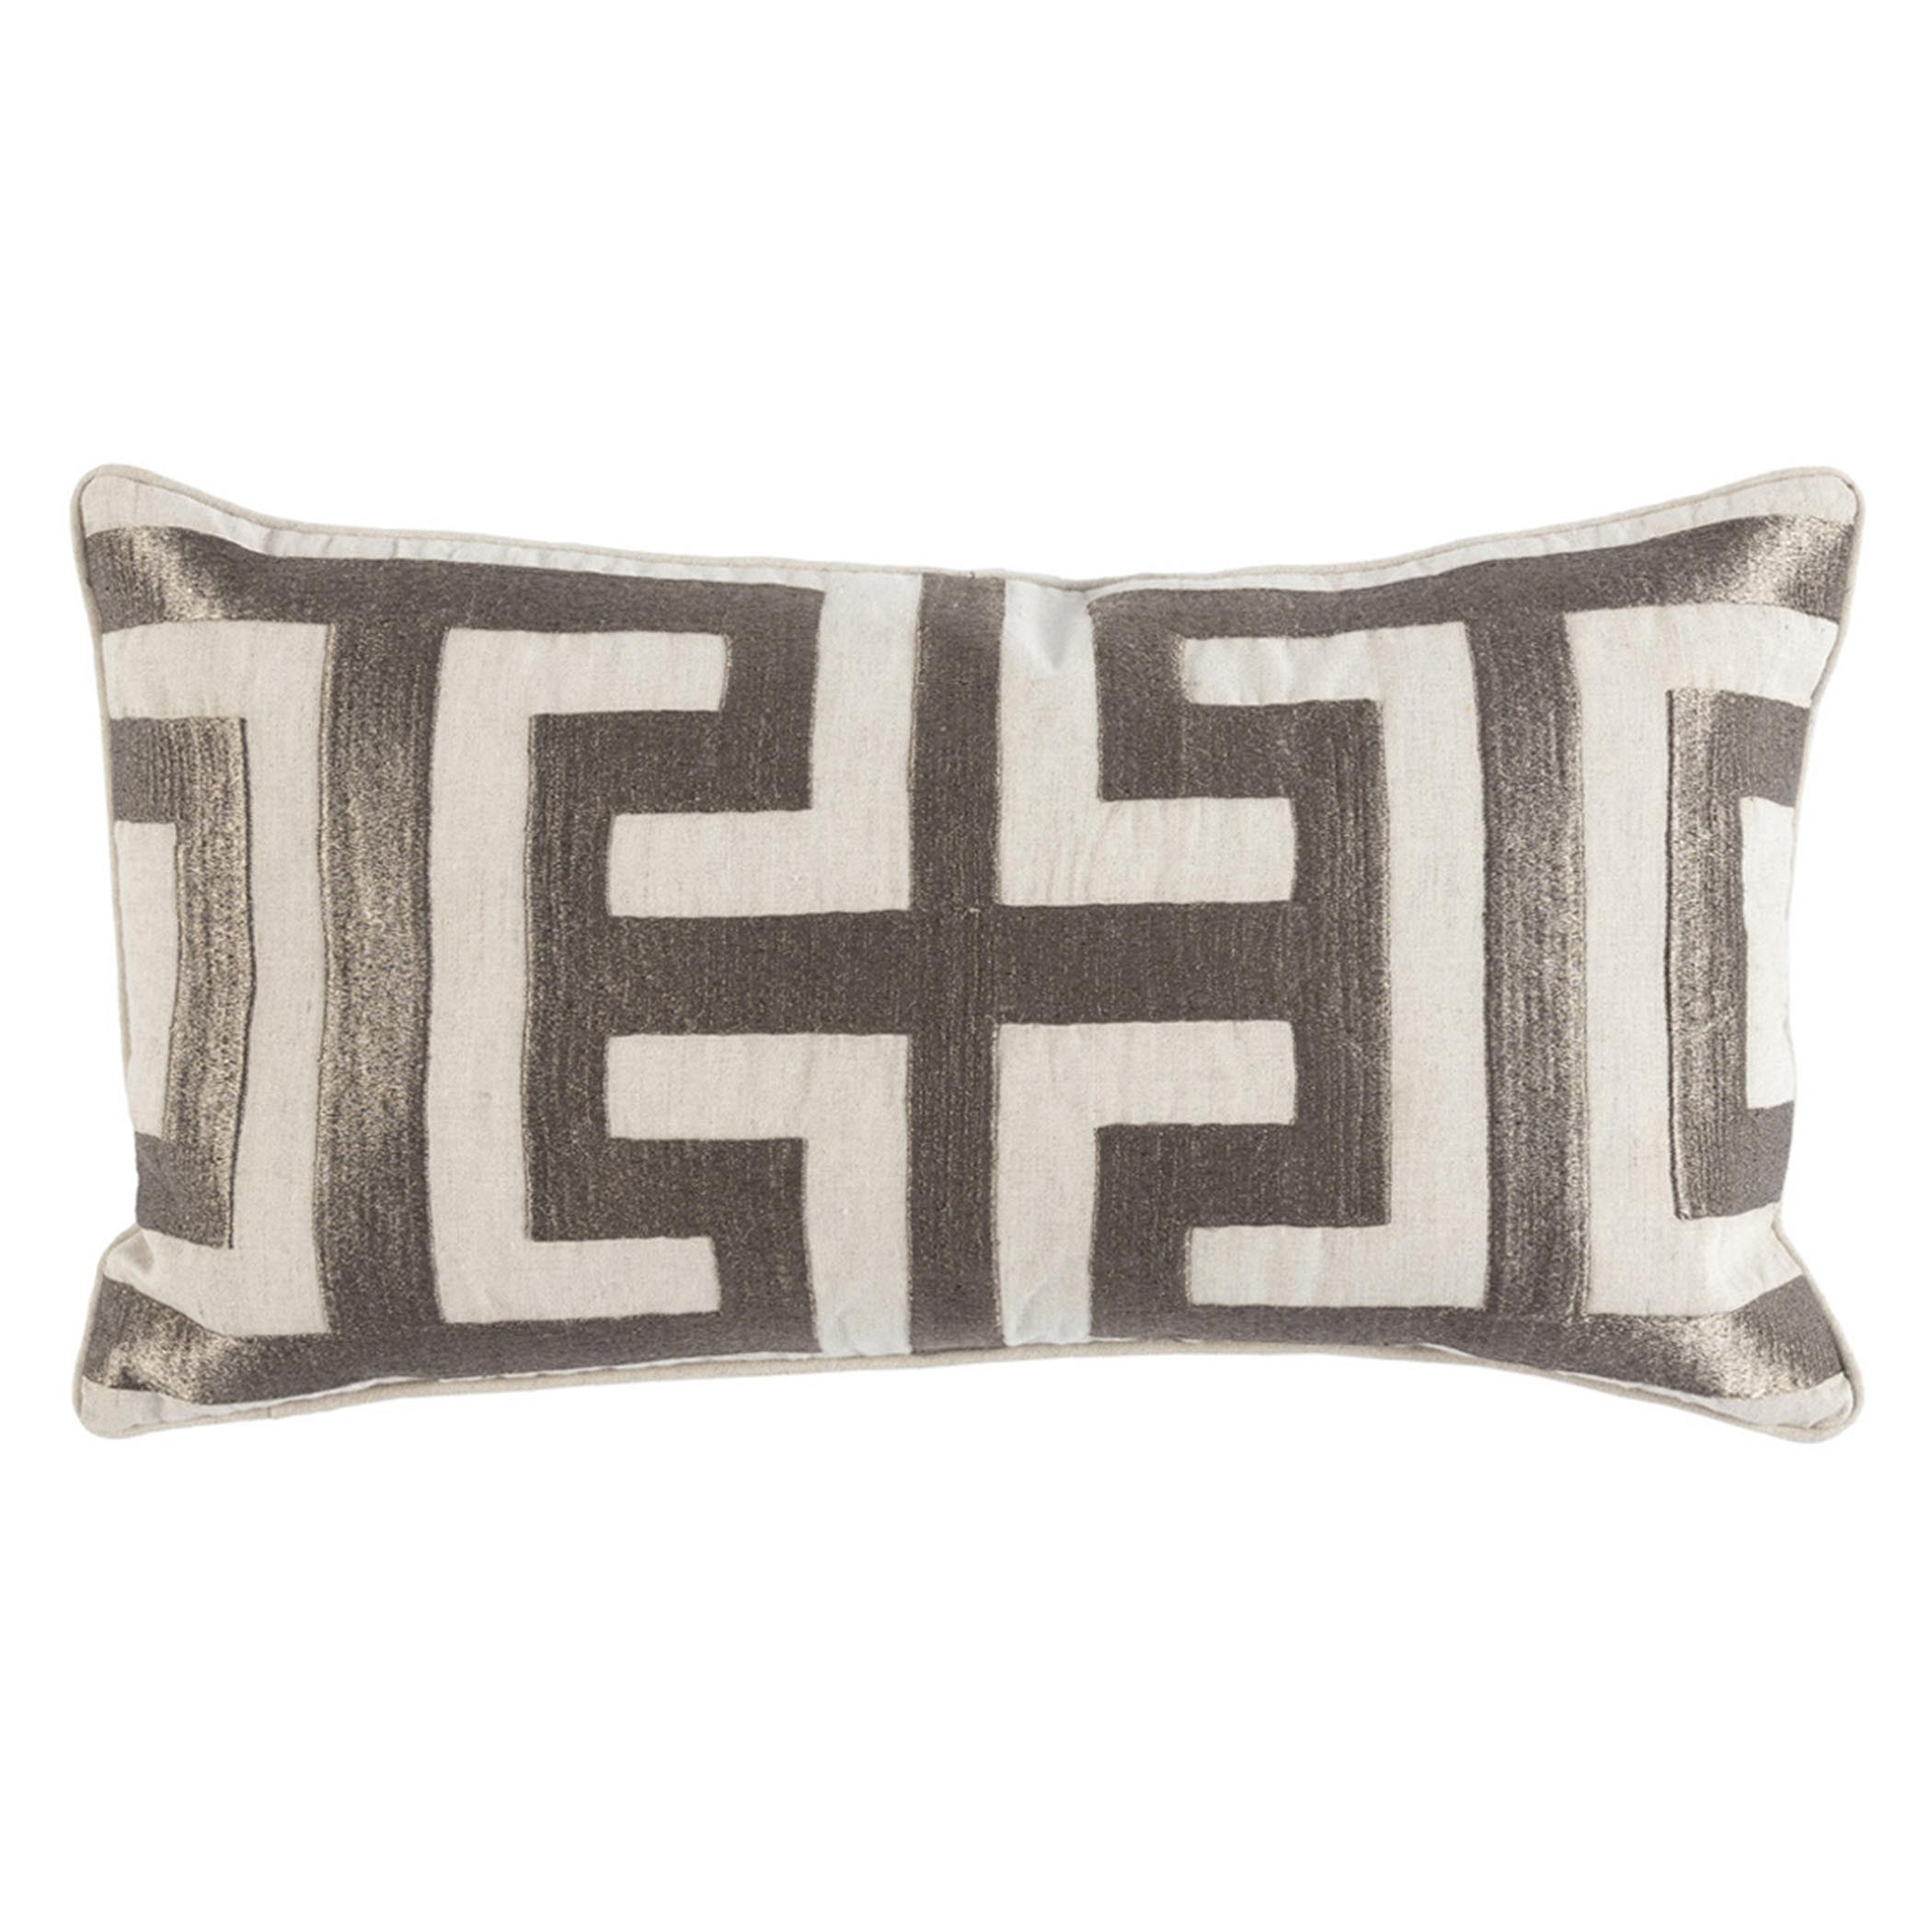 Cace Pillow Collection